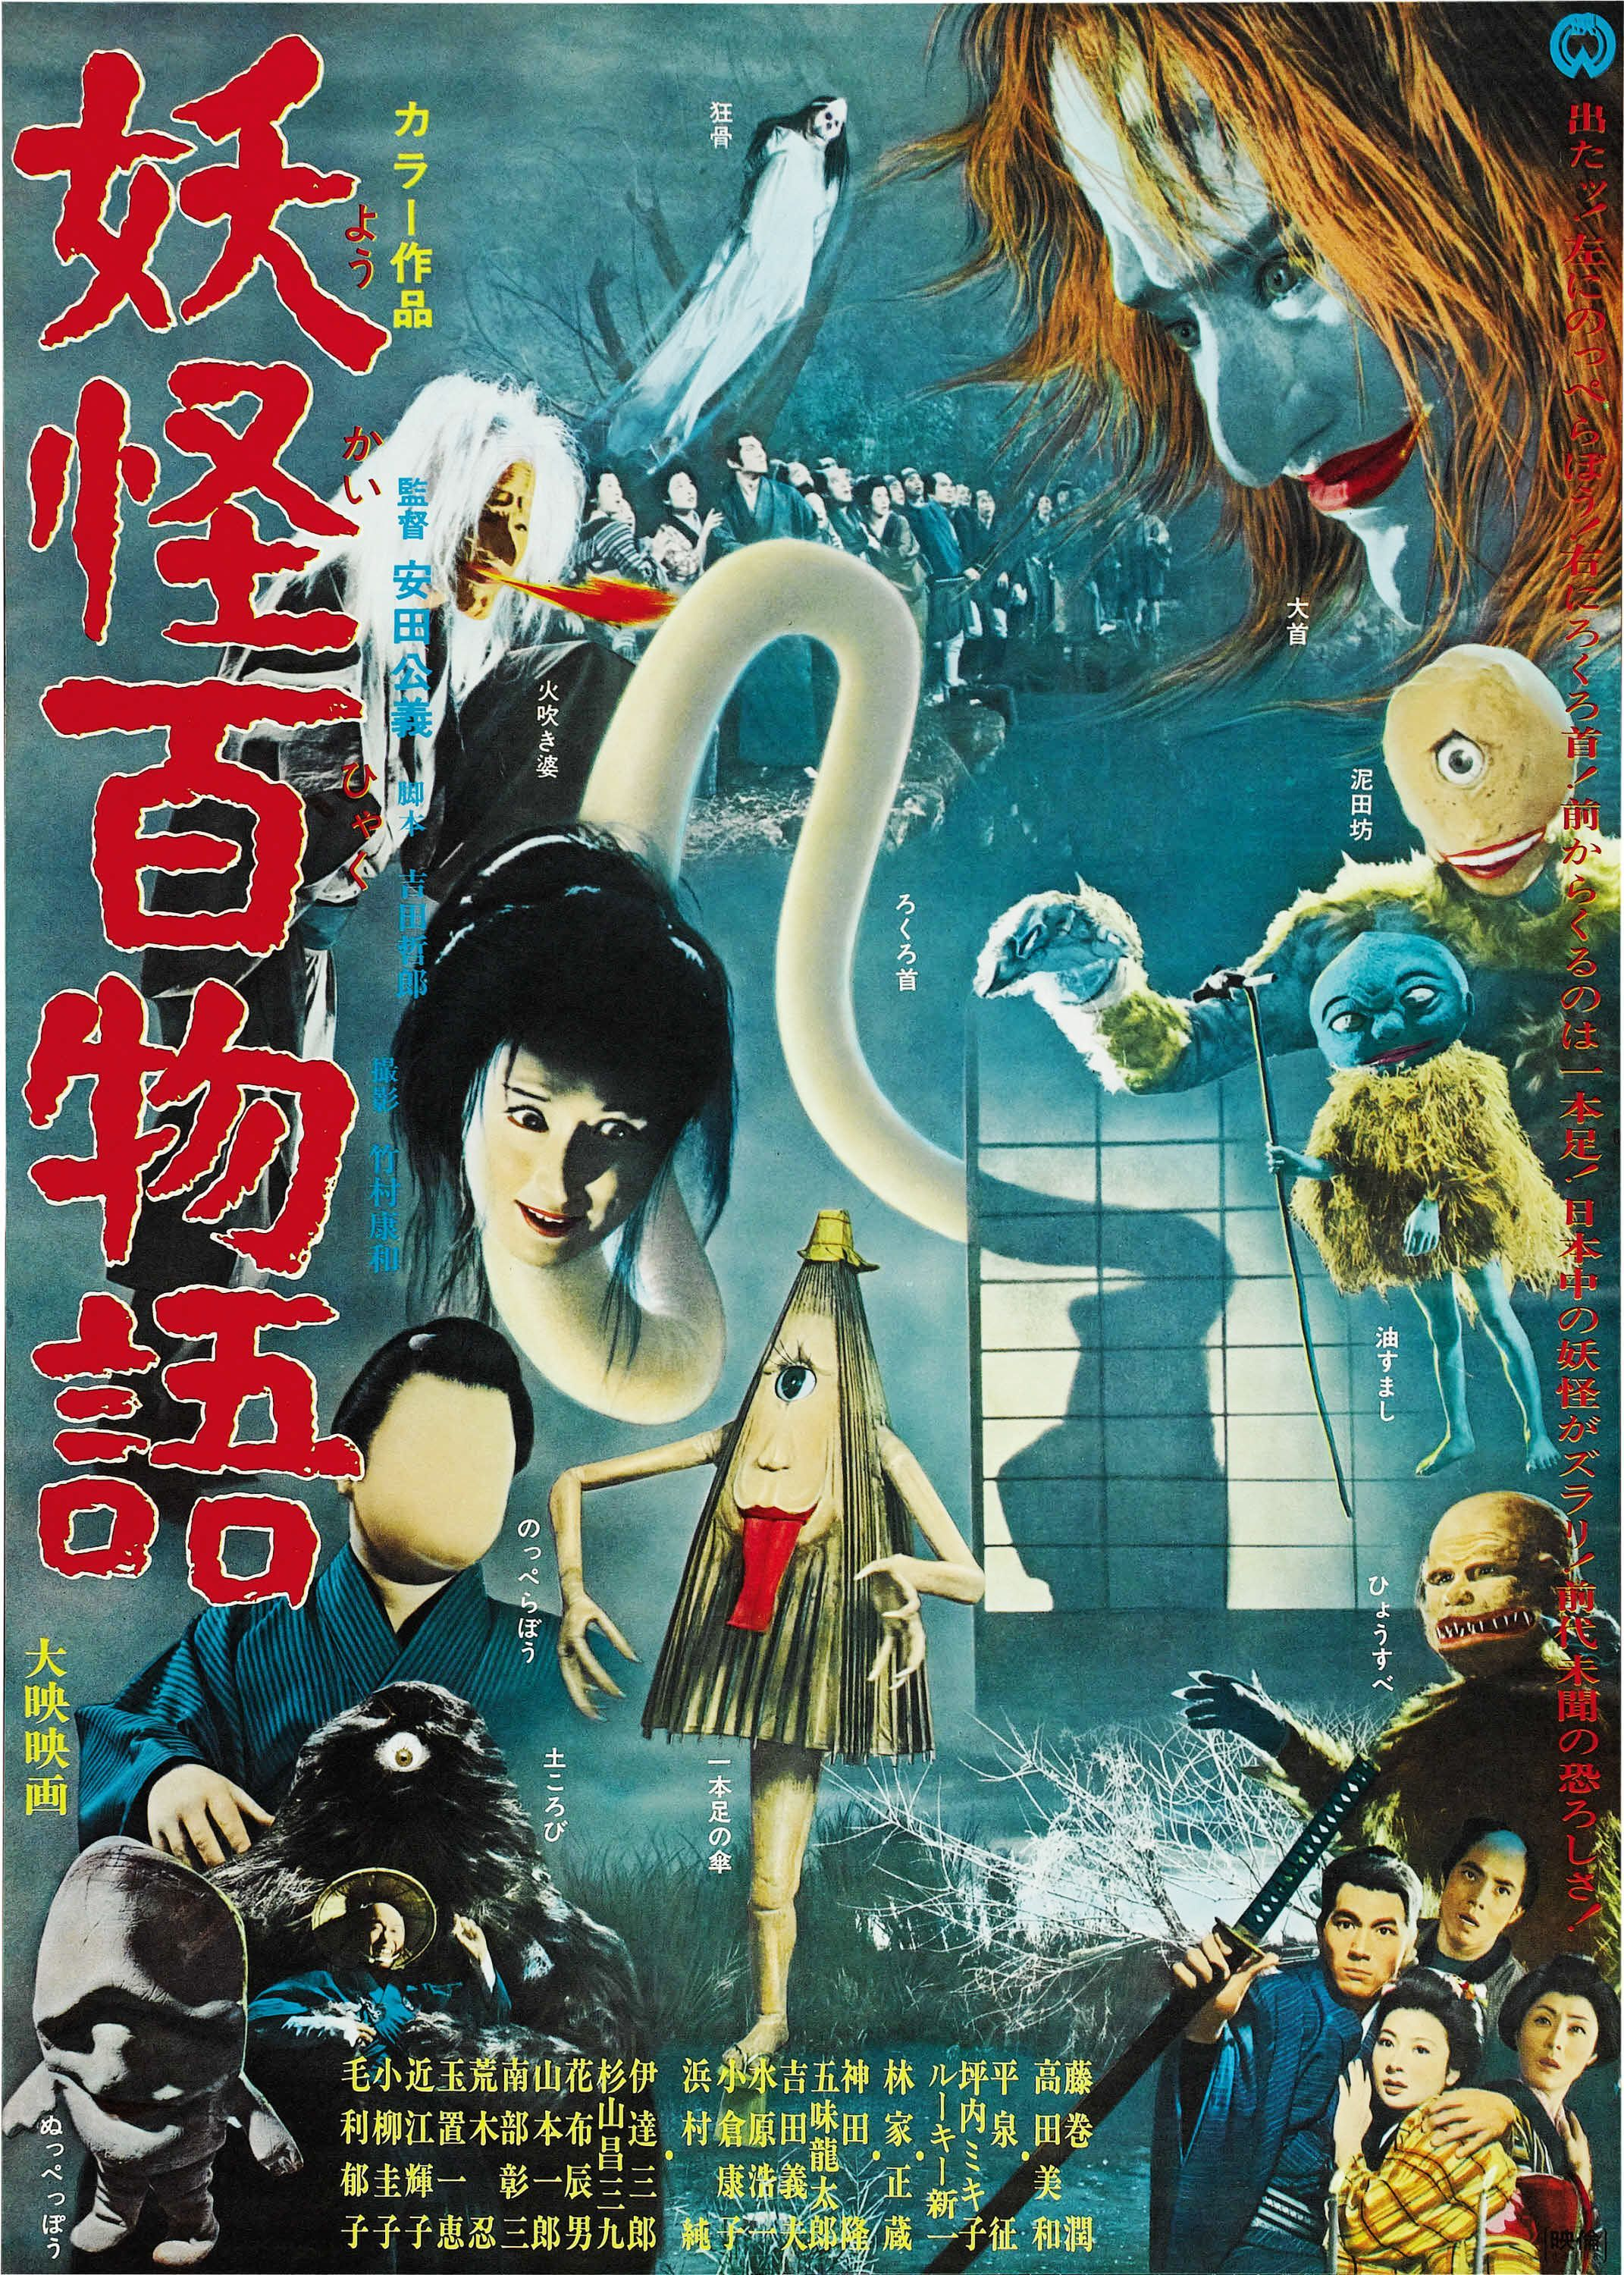 Old Japanese Horror Movie Posters